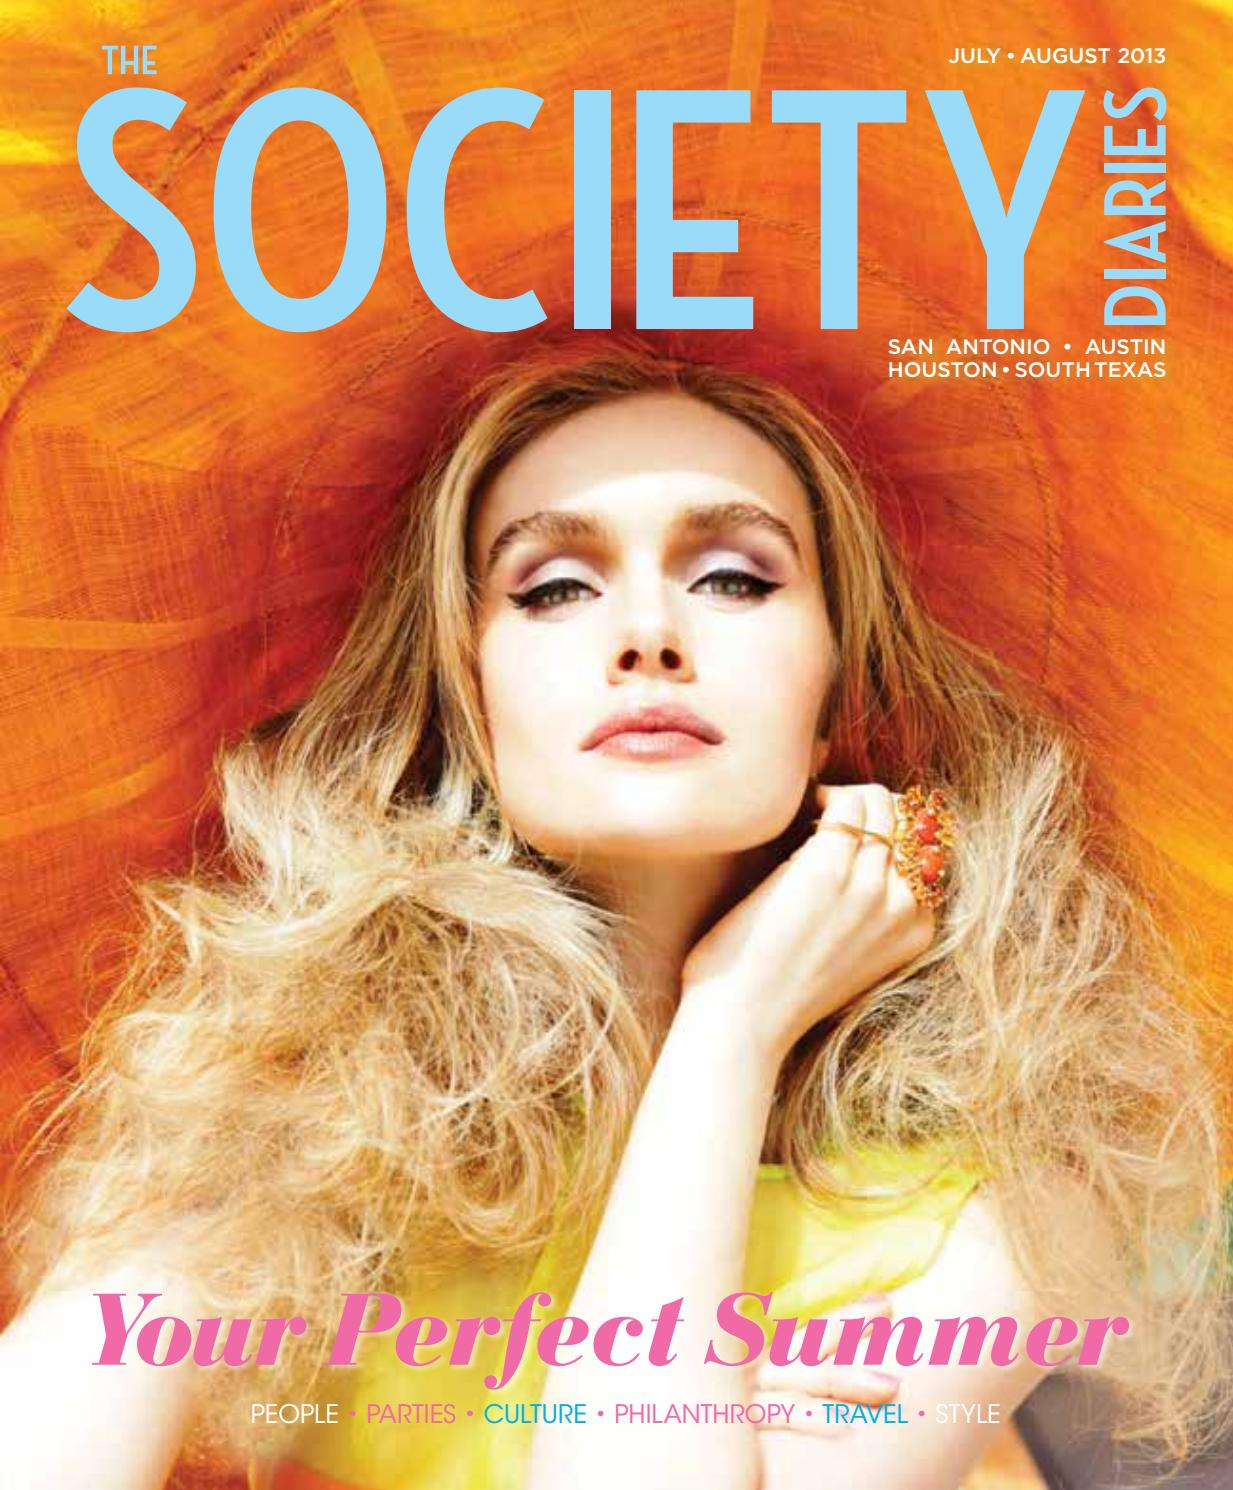 The society diaries july august 2013 by the society diaries issuu publicscrutiny Image collections